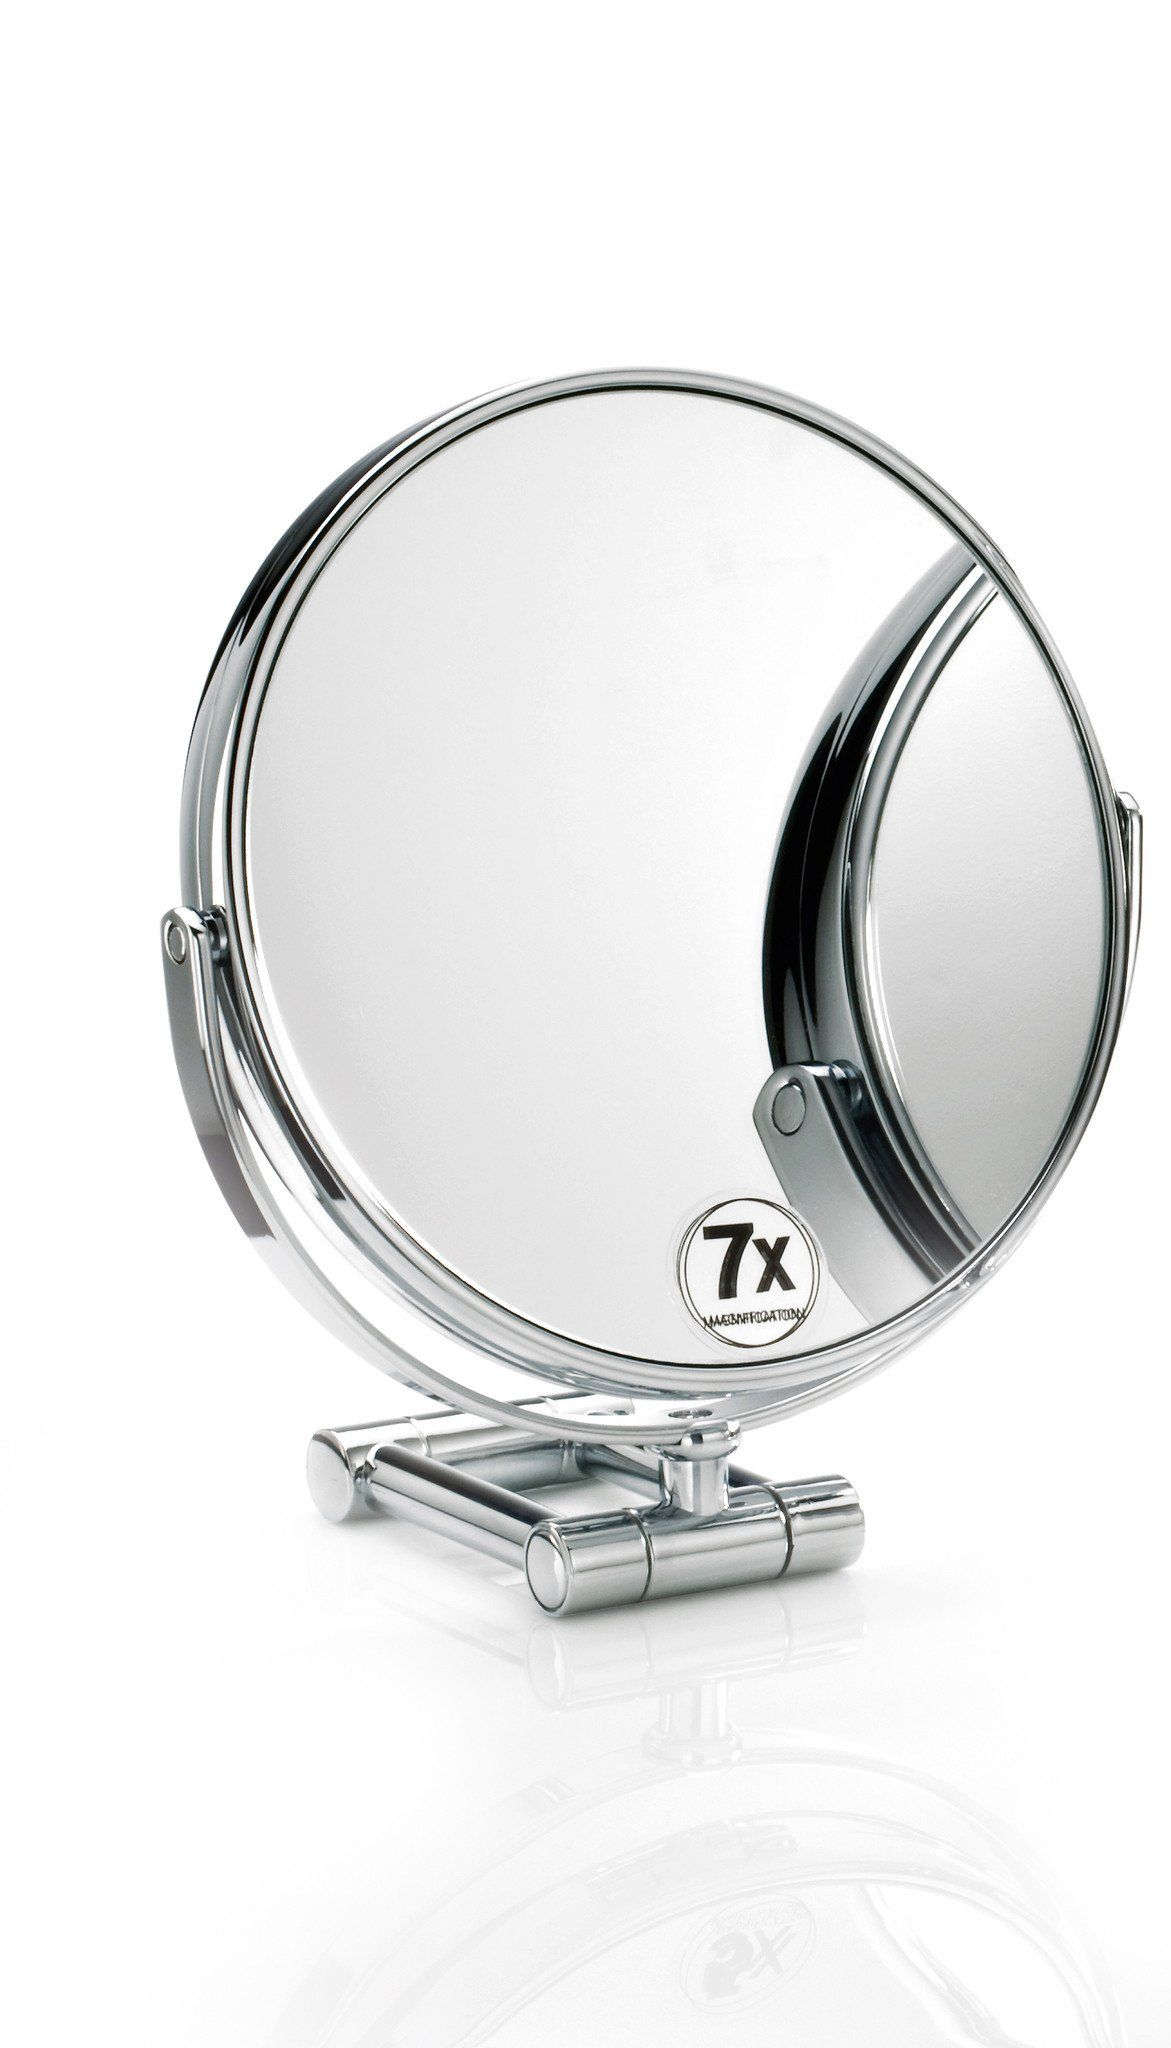 DWBA Round Cosmetic Table Makeup ADJ Magnifying Mirror. Chrome (7X ...